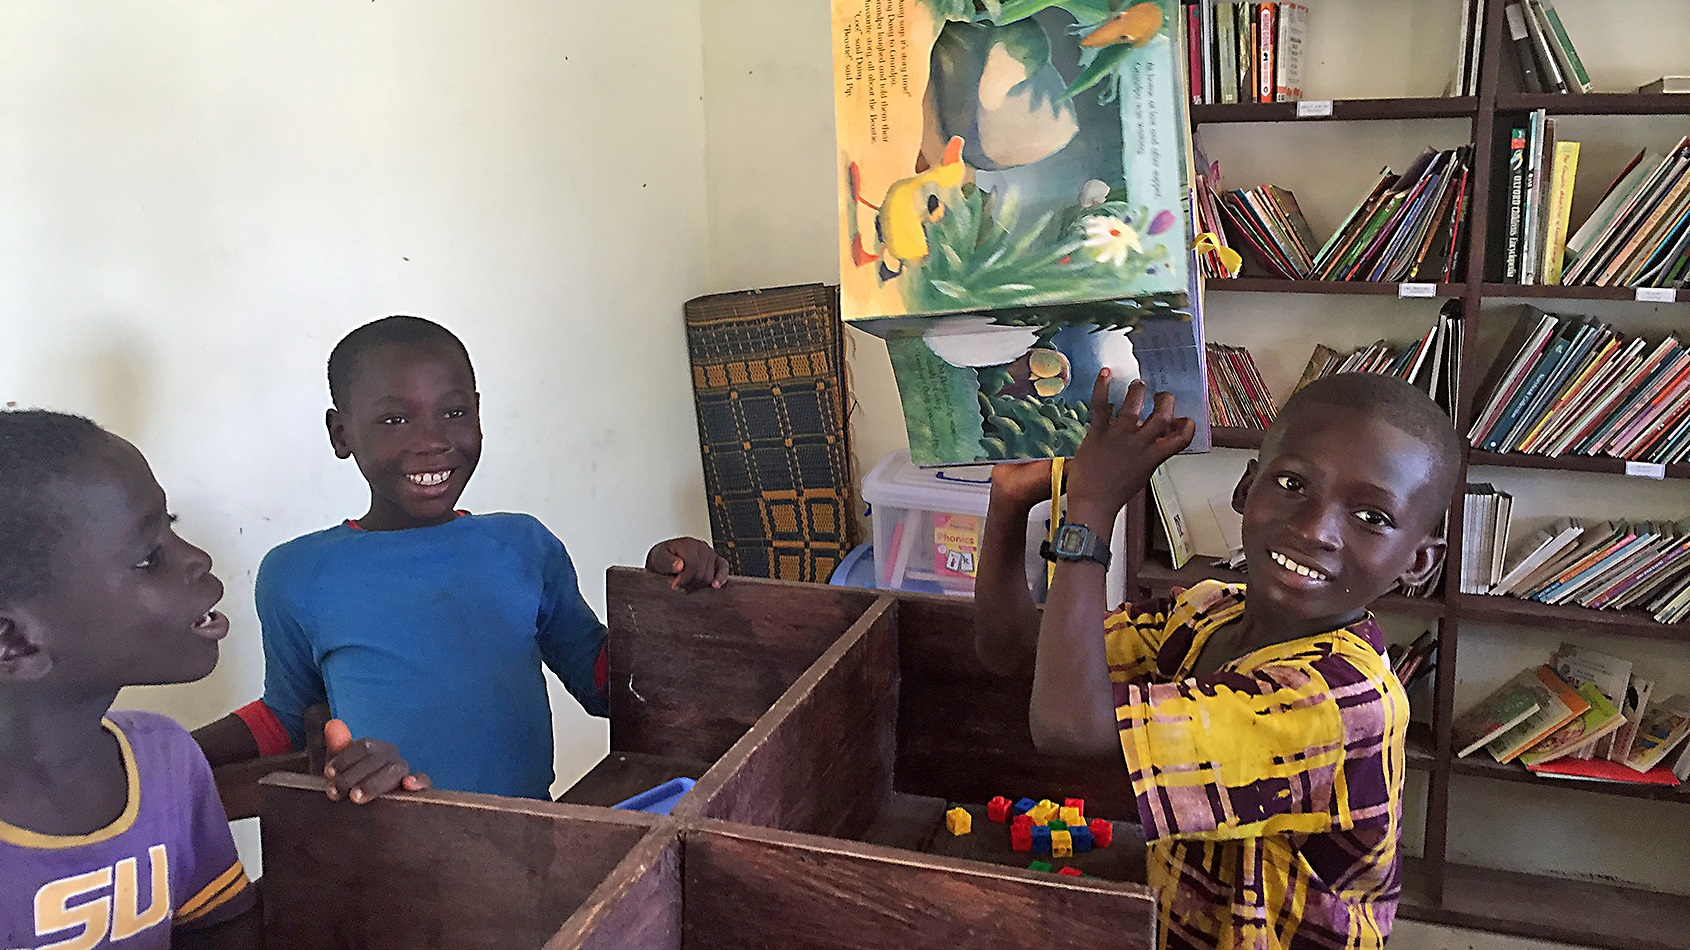 All reading spots have a mixture of African and British books